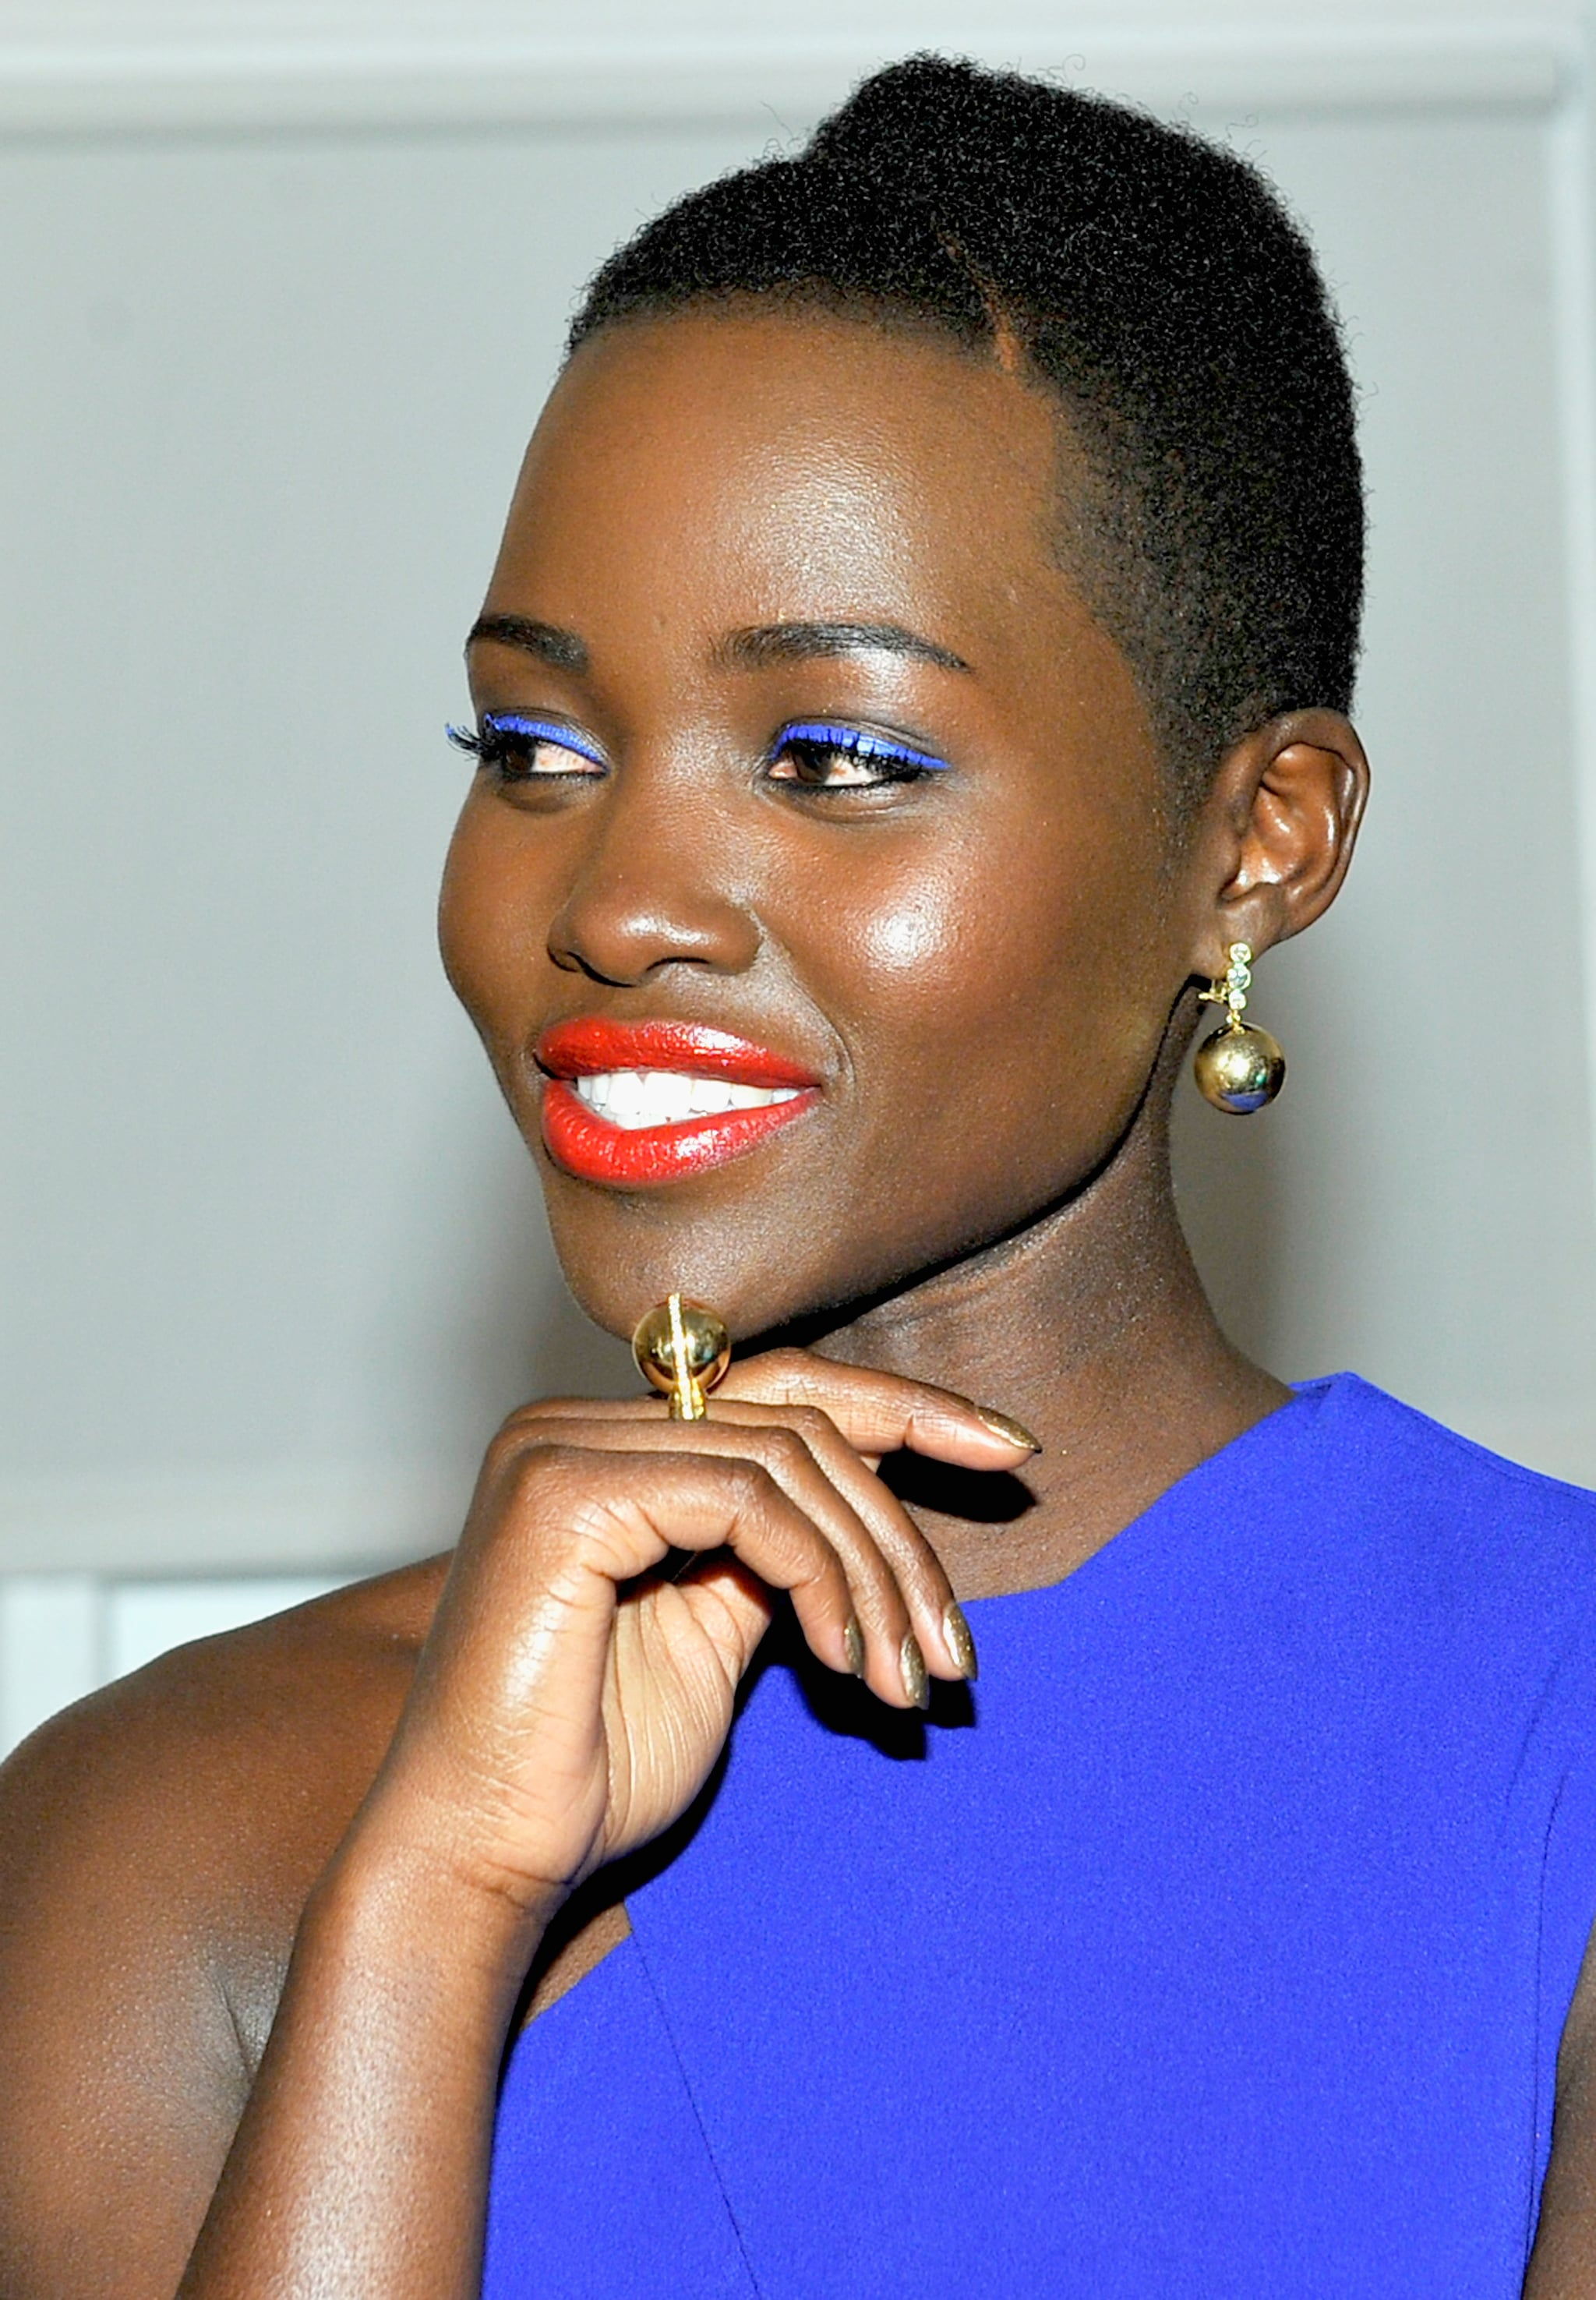 Lupita wore a bold, blue cutout dress to the cocktail party.